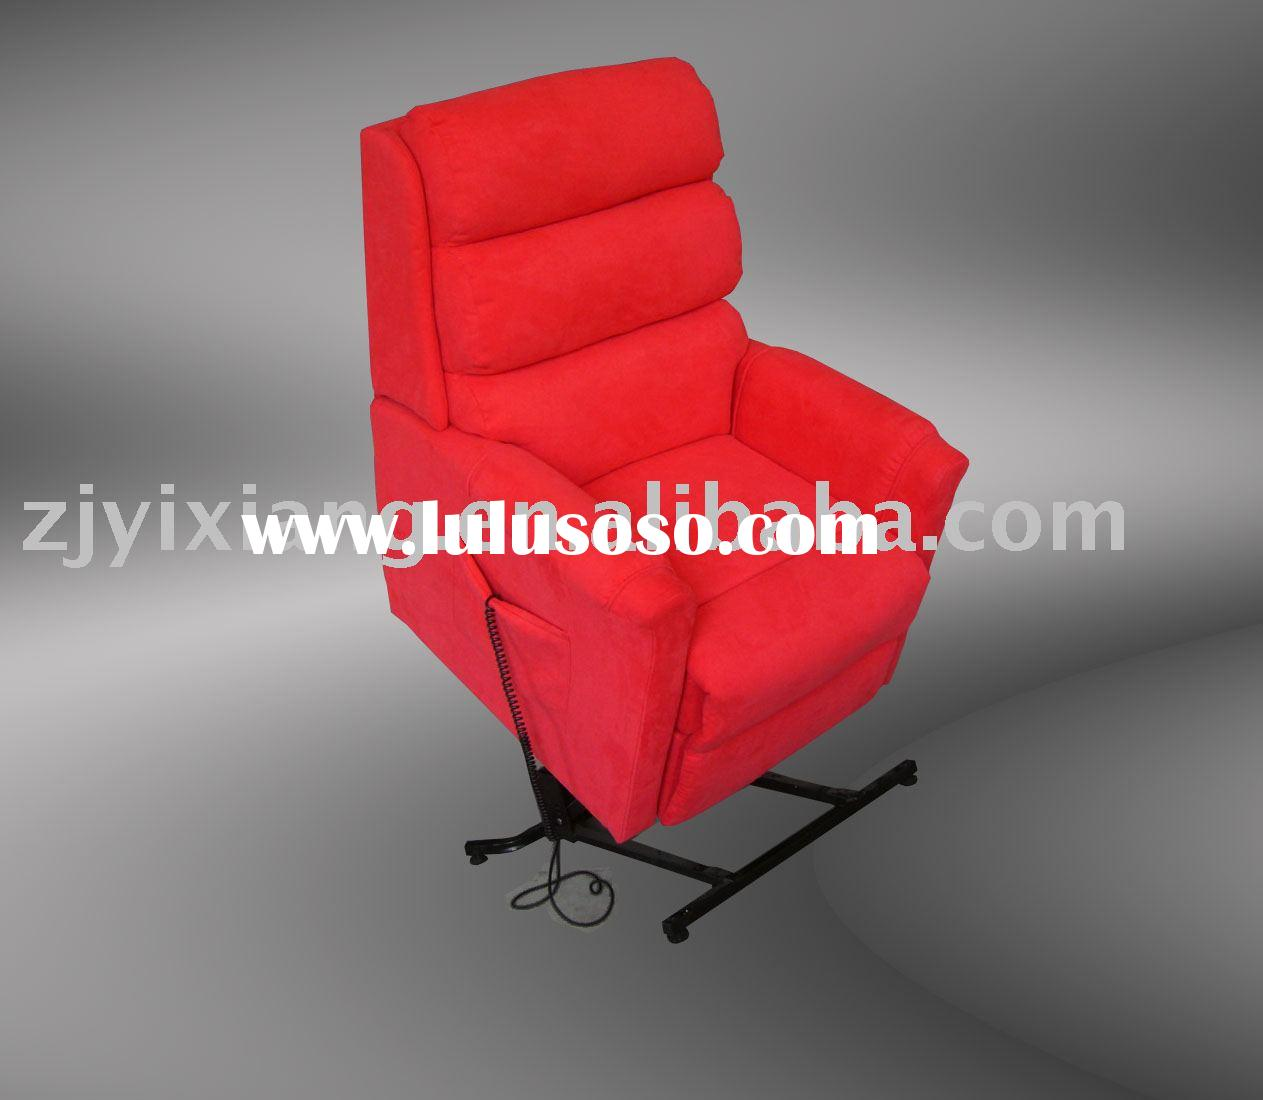 2831 electric recliner sofa chair(  fabric chair,multi-function chair,reclining chair)